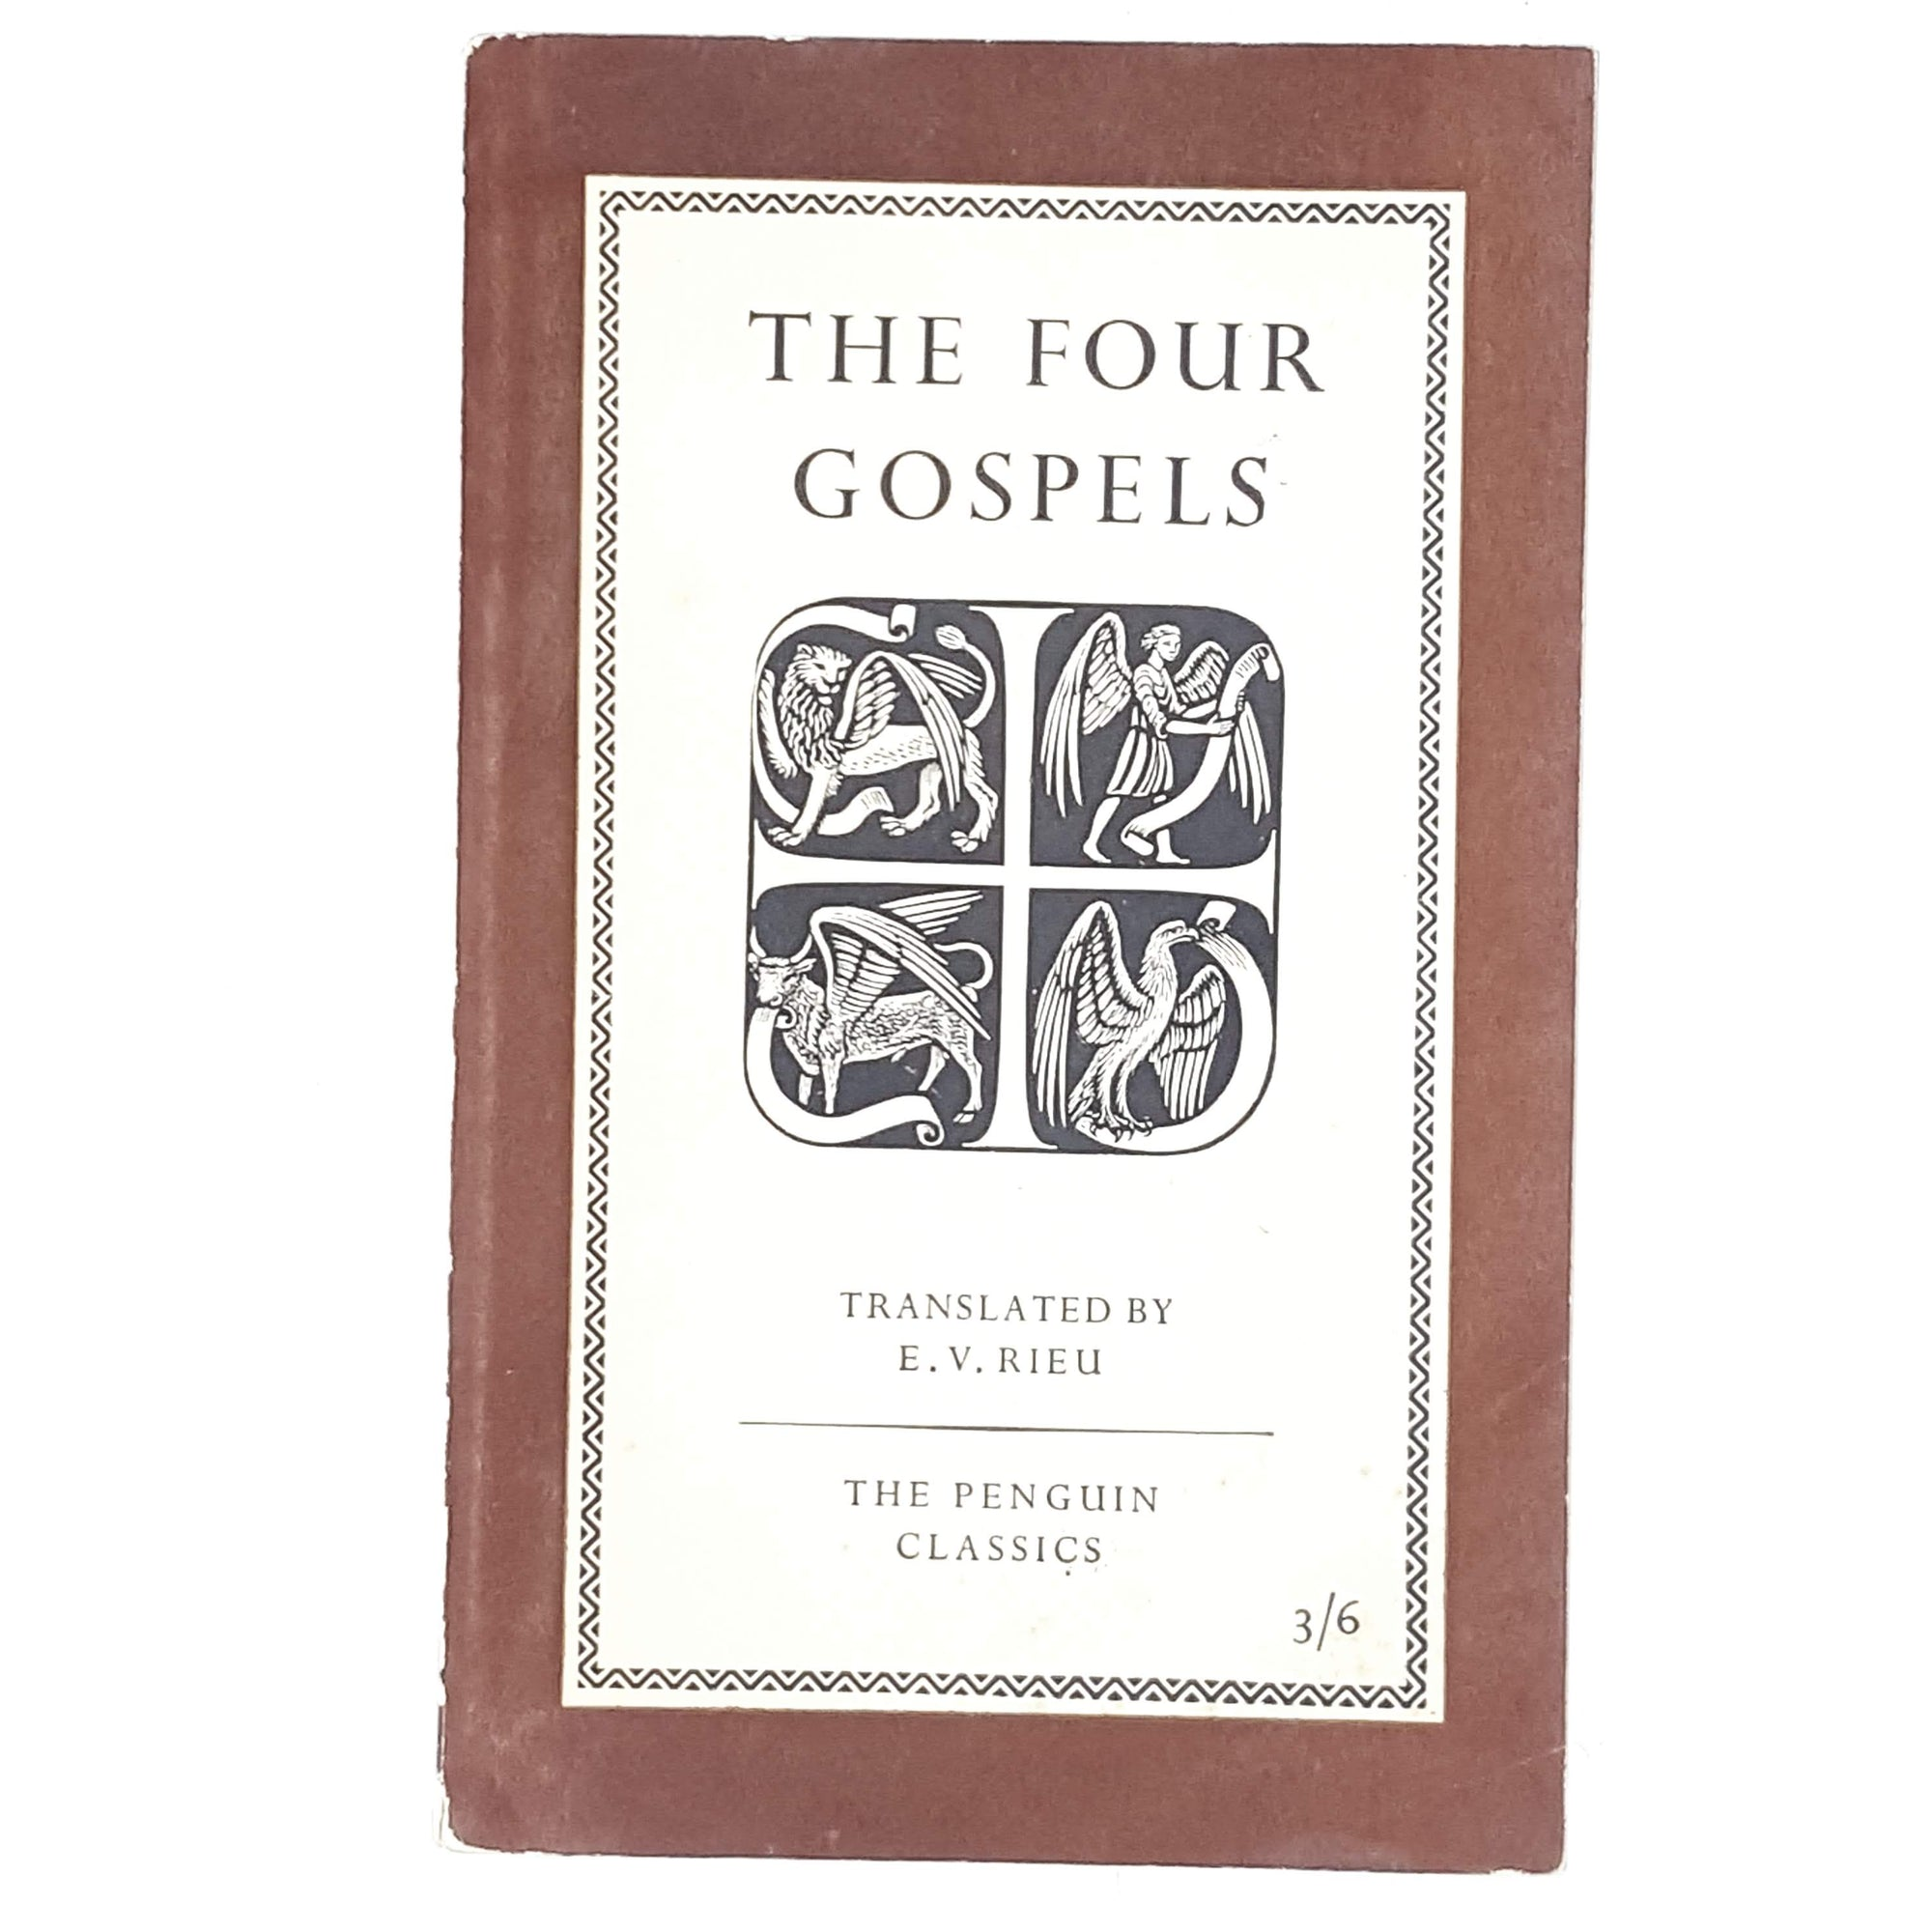 Vintage Penguin The Four Gospels translated by E. V. Rieu 1956